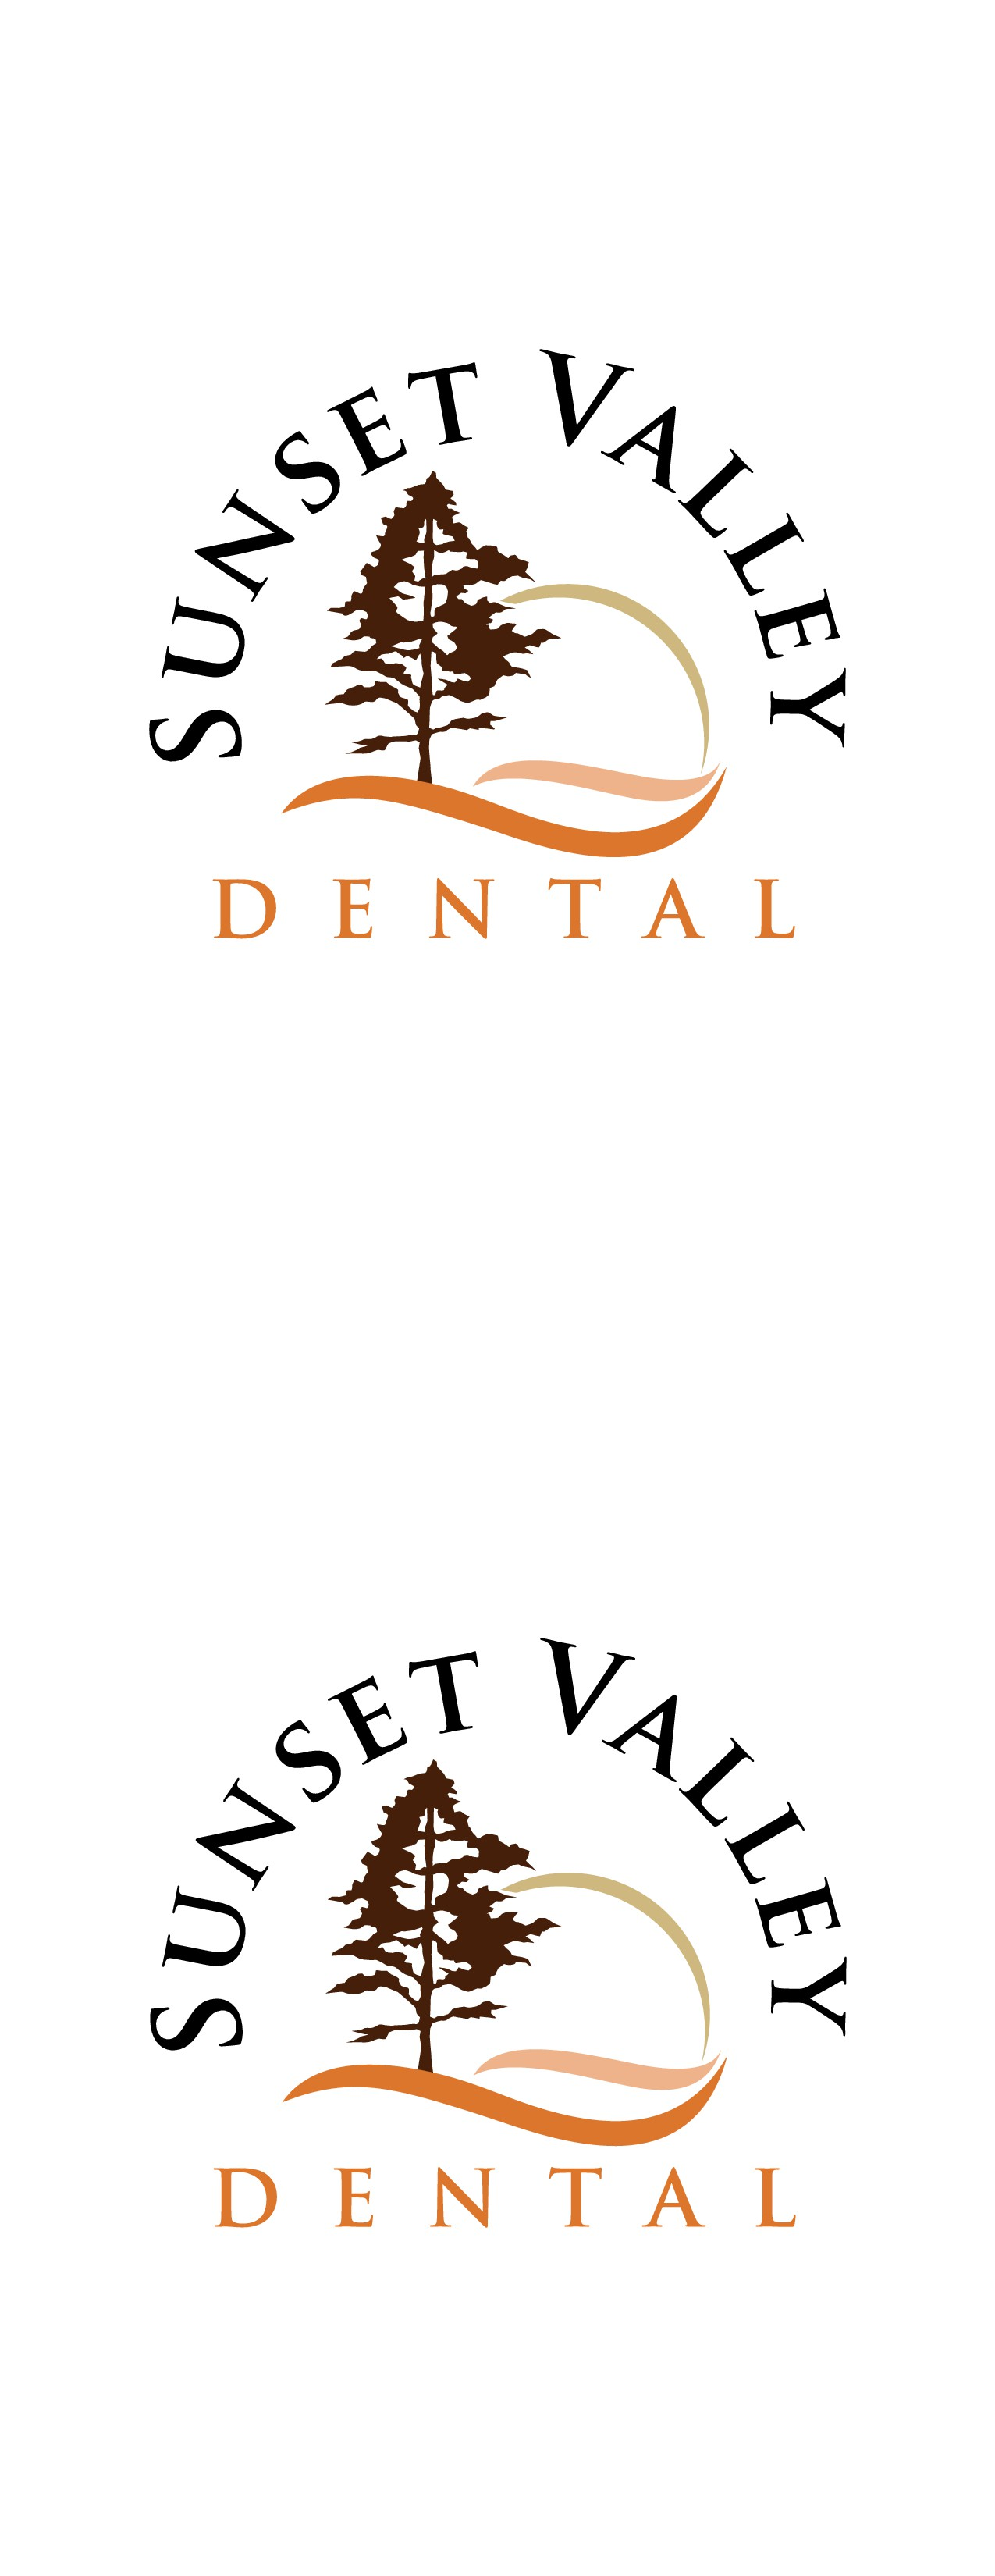 Changing the face of dentistry, one logo at a time...